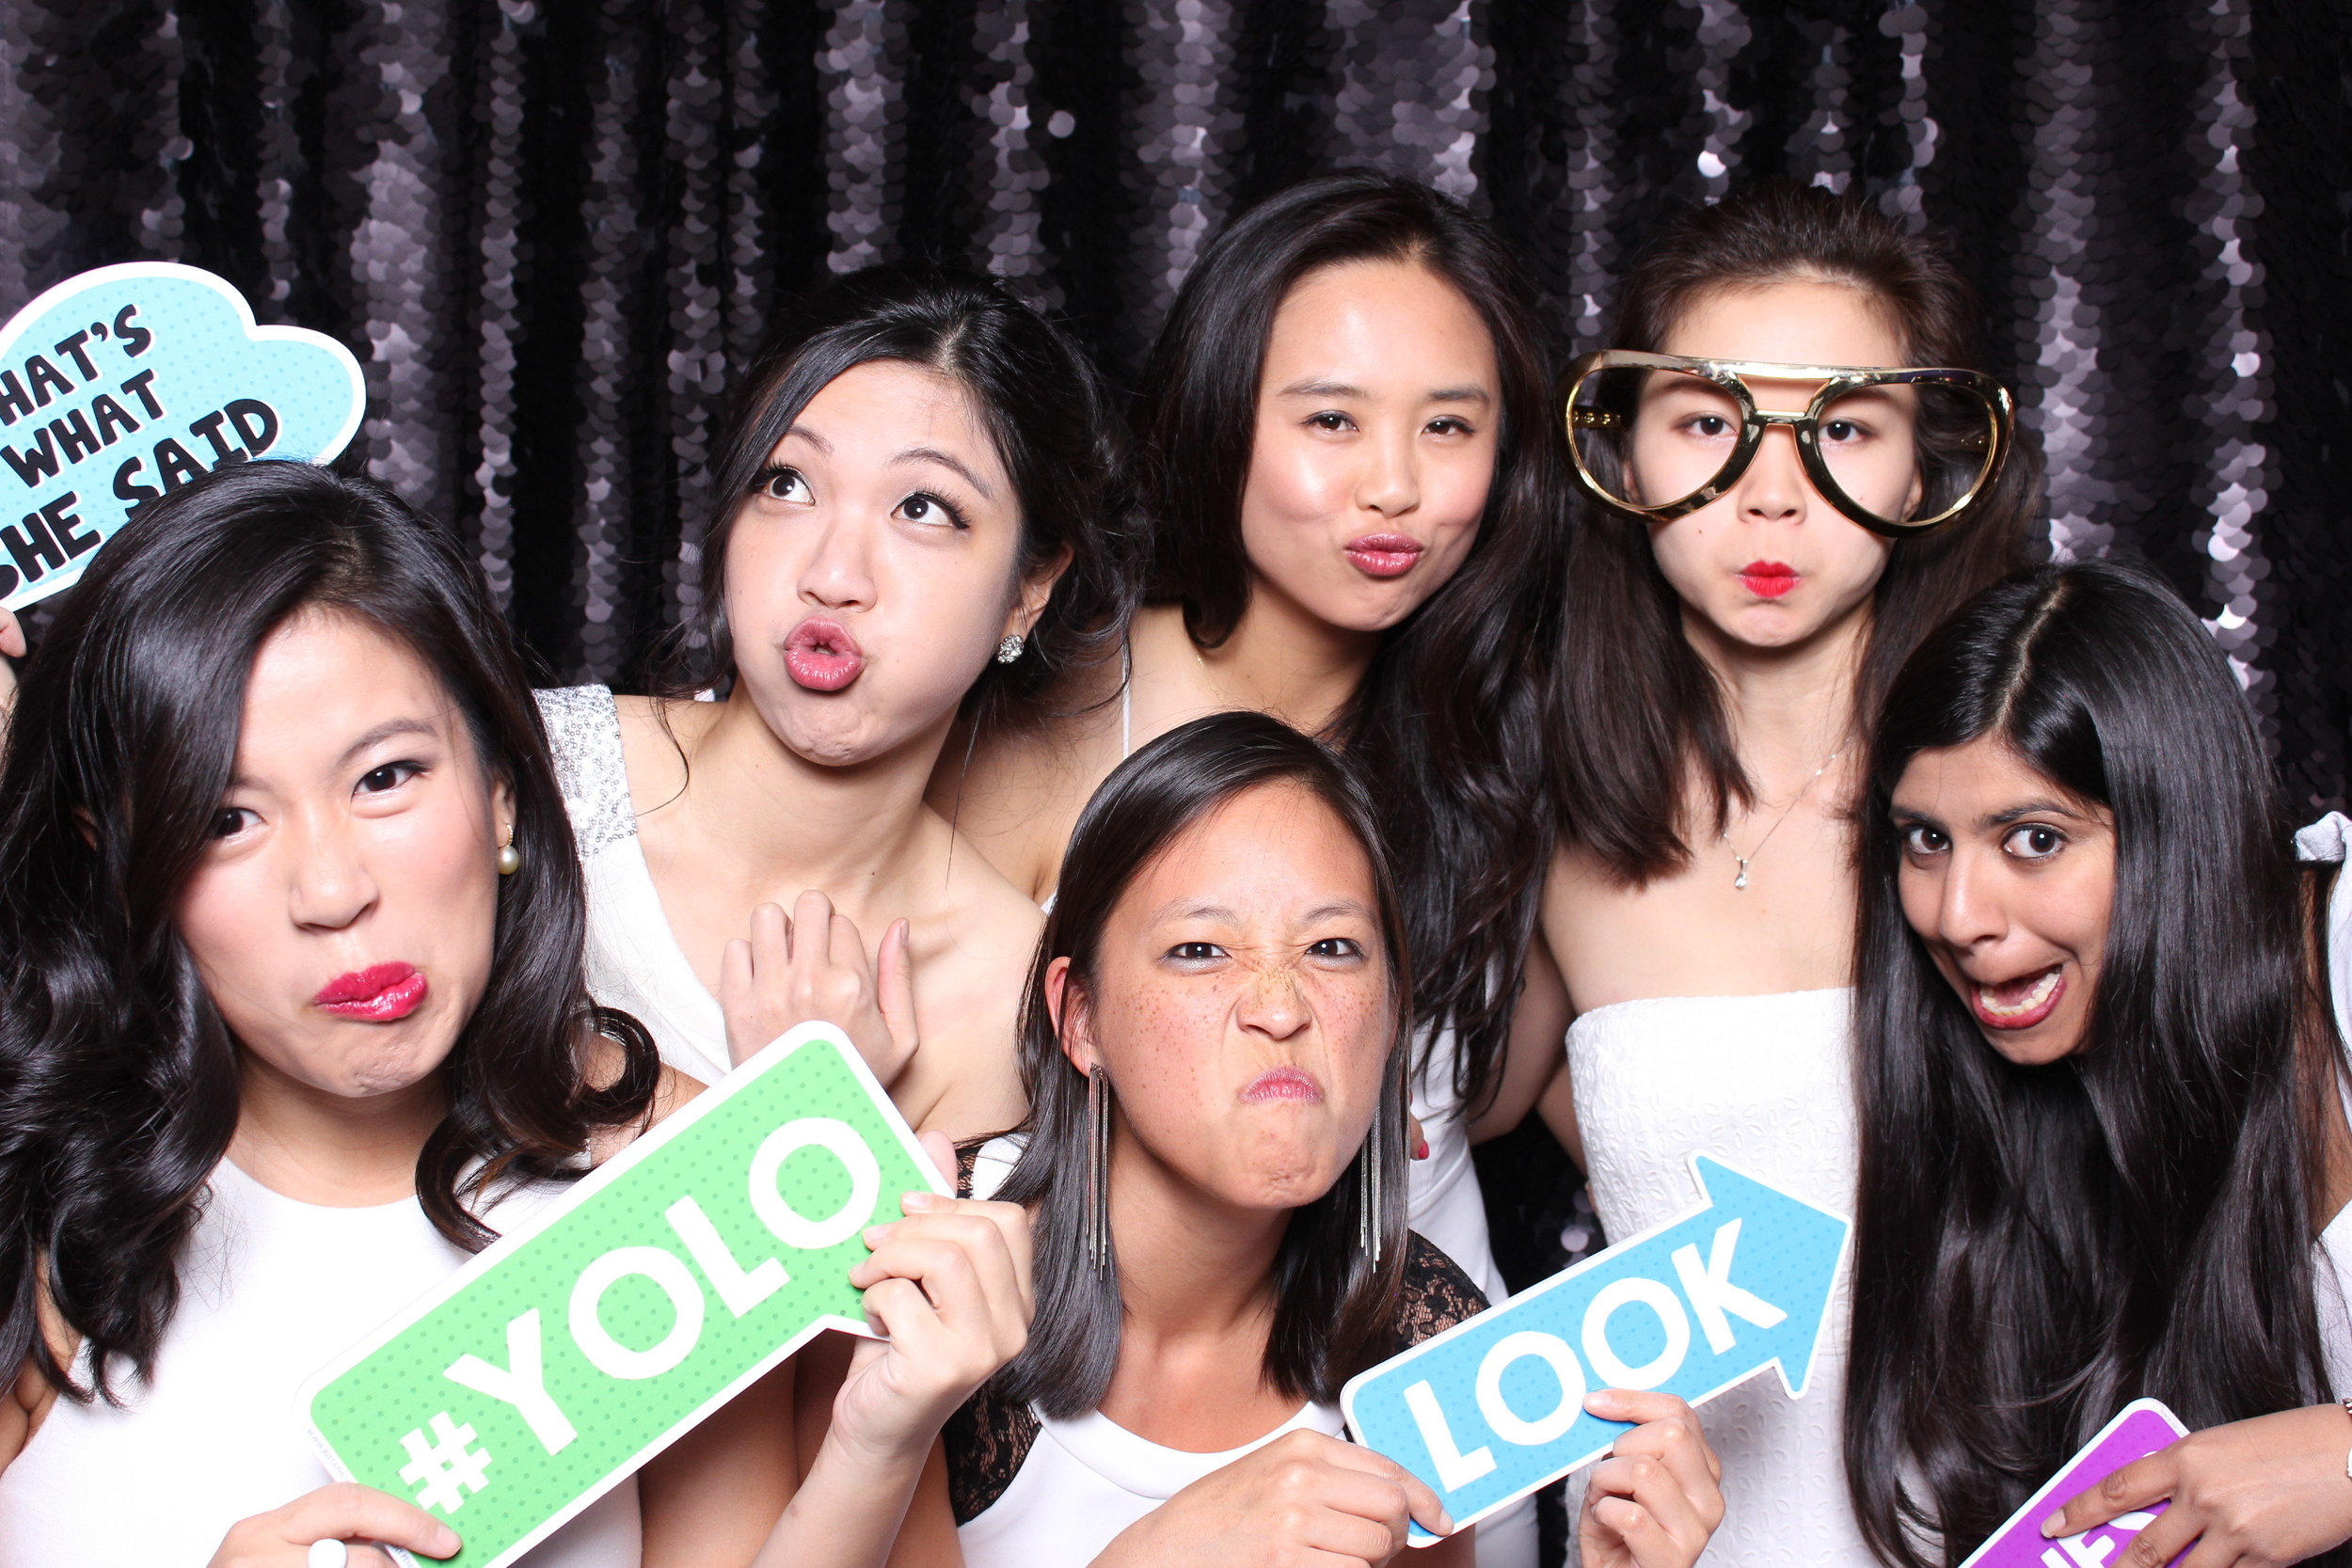 Funny face photobooth